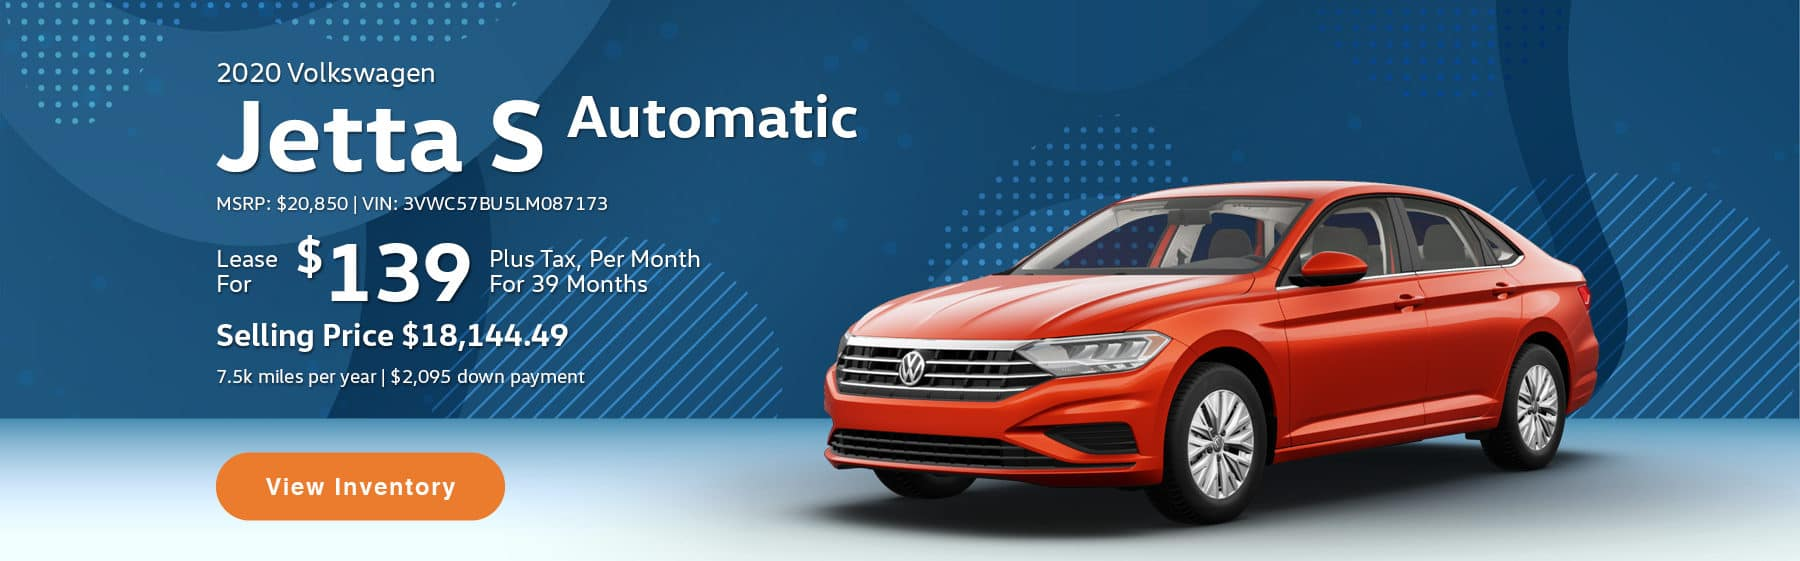 Lease the 2020 Jetta S Automatic for $139 per month, plus tax for 39 months.